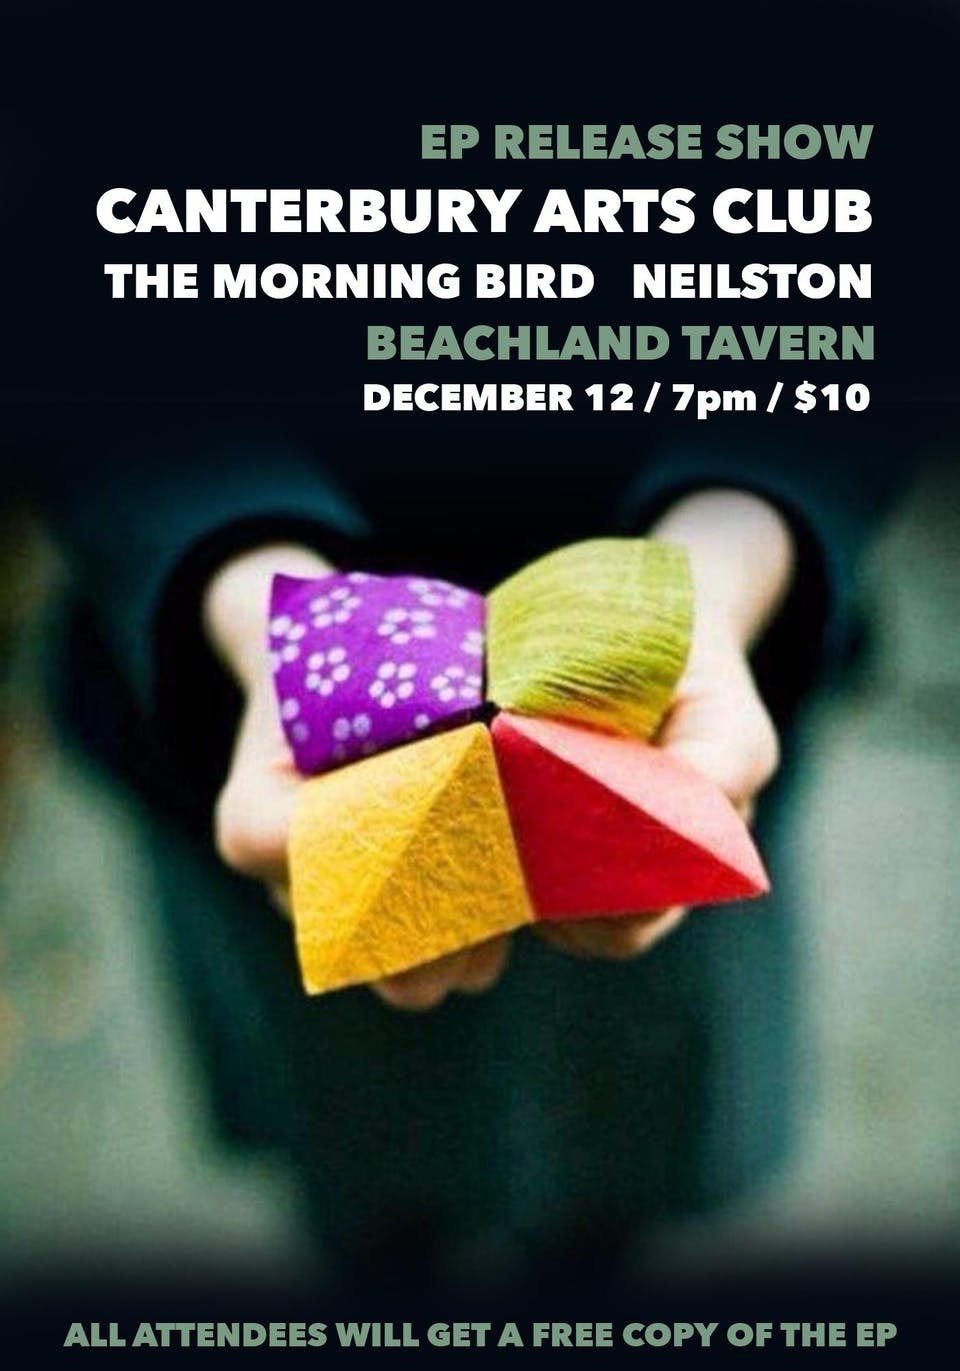 Canterbury Arts Club EP Release with The Morning Bird and Neilston